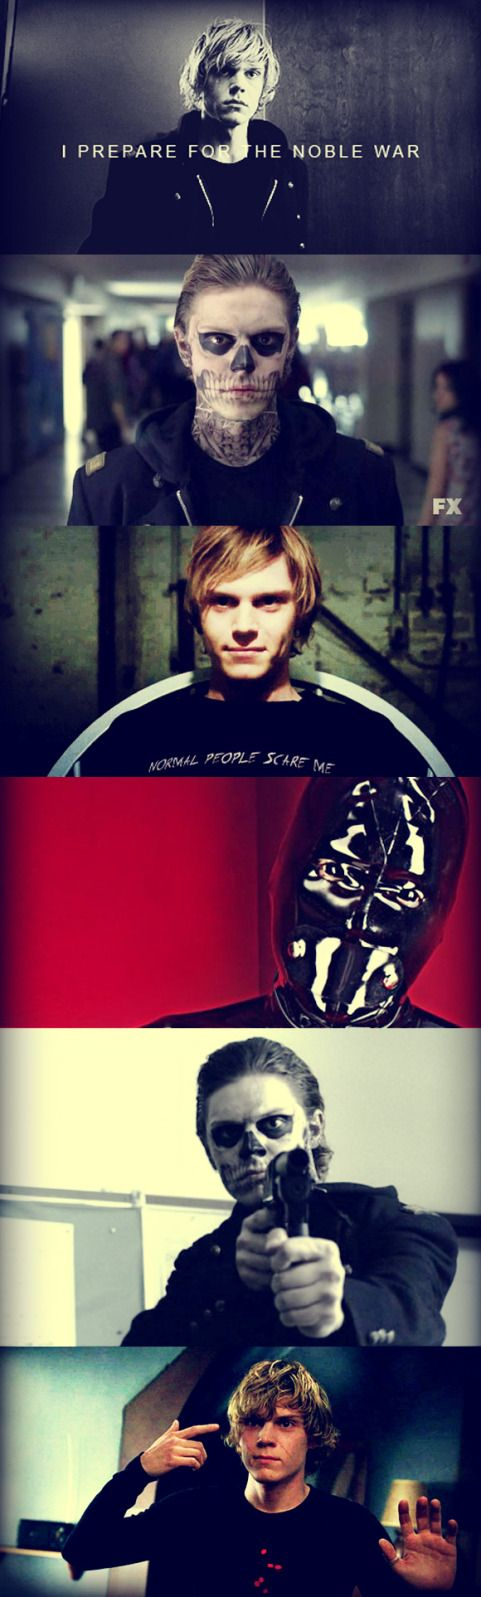 I'm a little obsessed with Tate Langdon. I love a good psychopath. He can murder me all day.